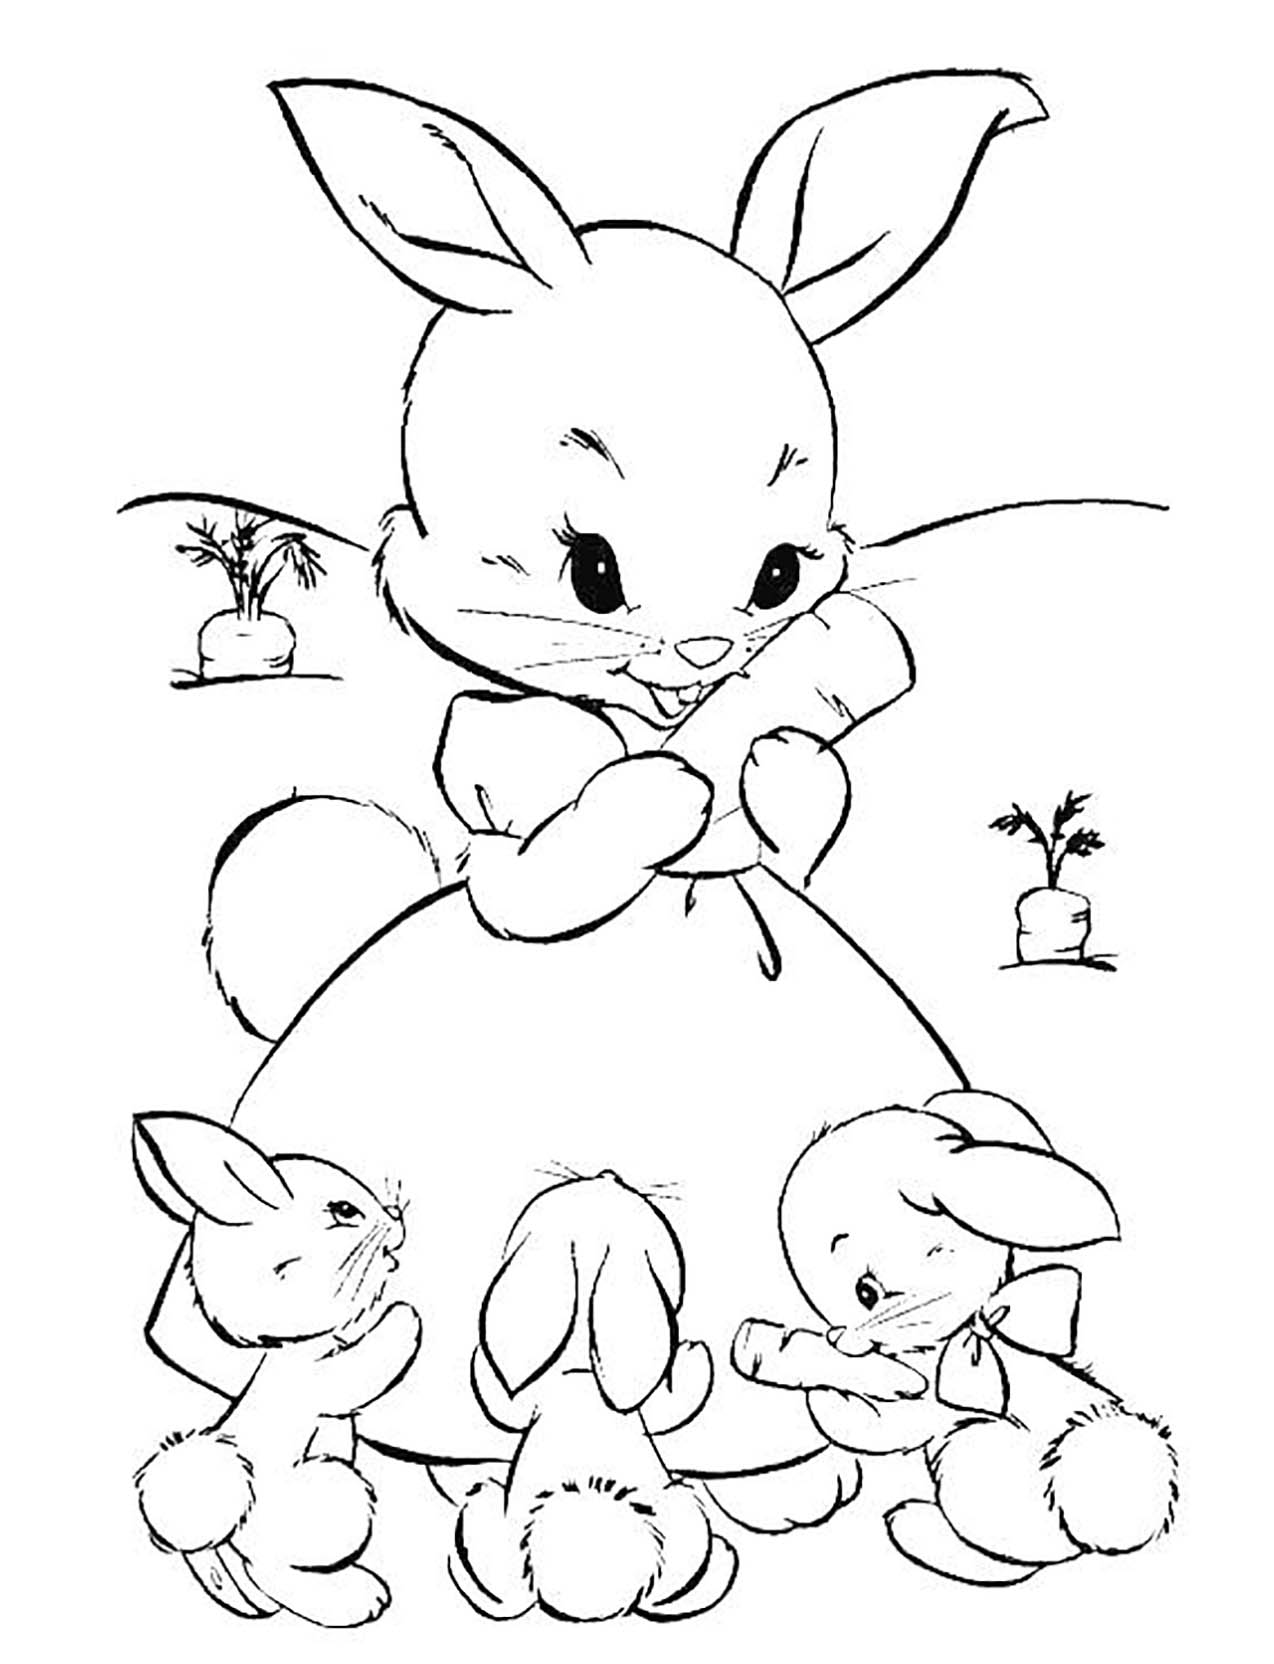 FREE Happy Easter Bunny Coloring Page and Card - Juju Sprinkles | 1664x1274